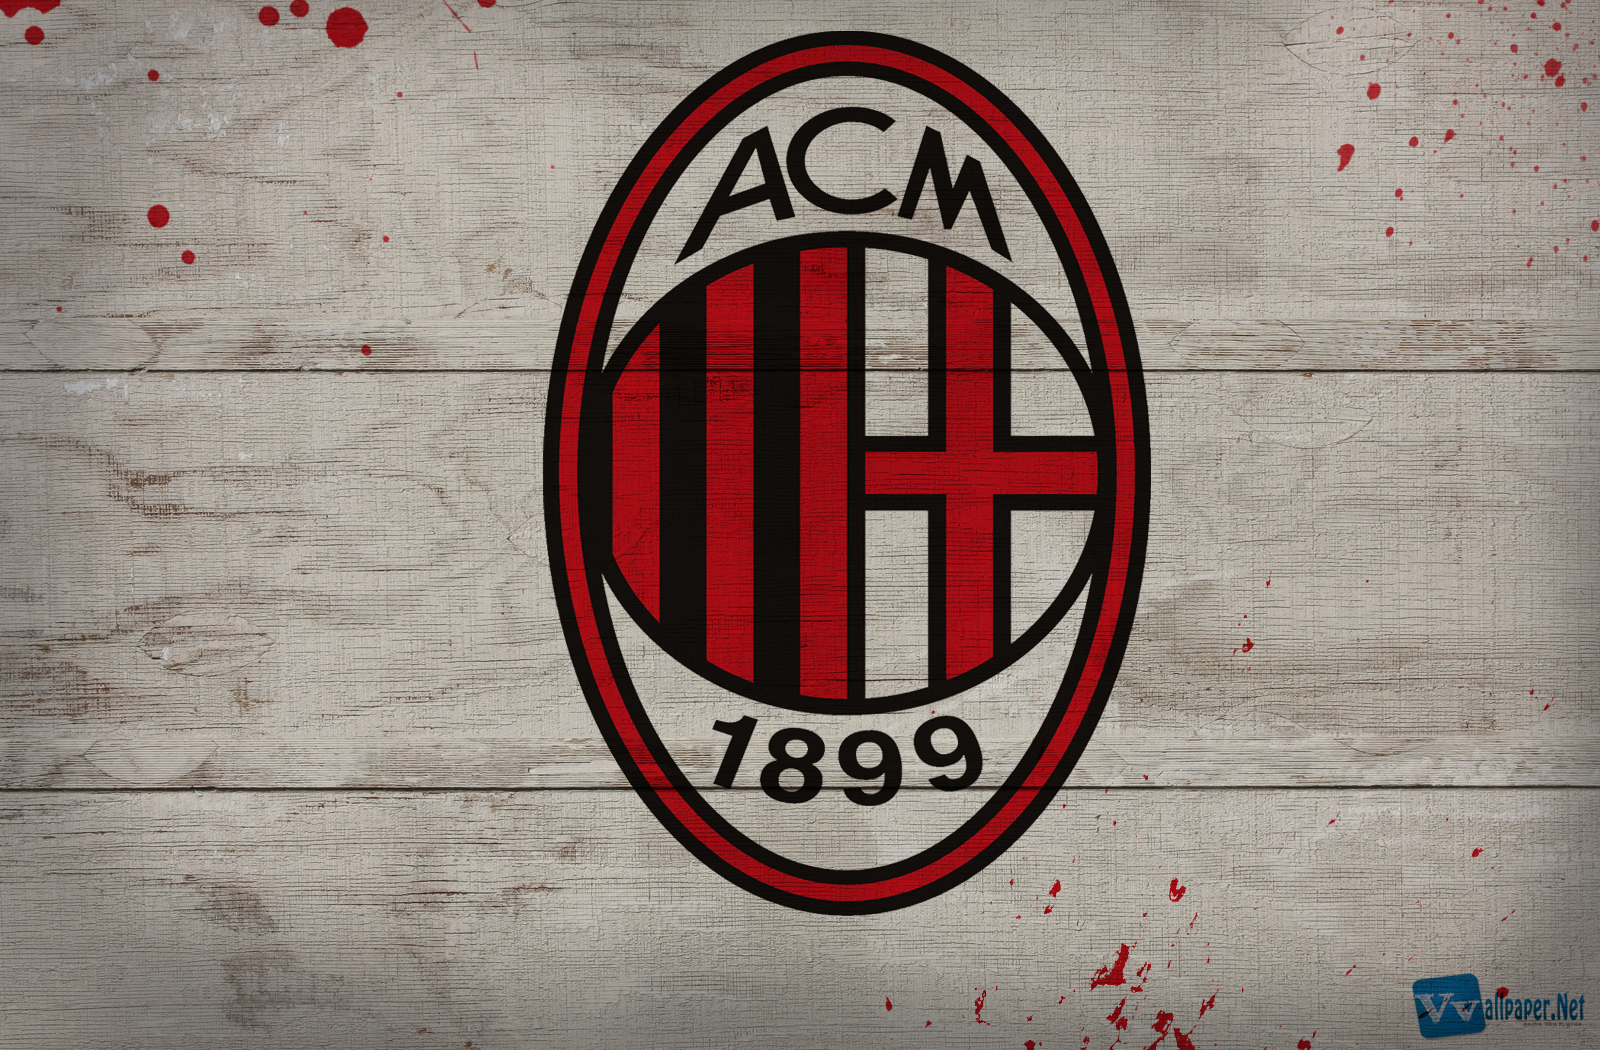 Hd wallpaper ac milan - Ac Milan Football Club Logo Design Hd Wallpaper